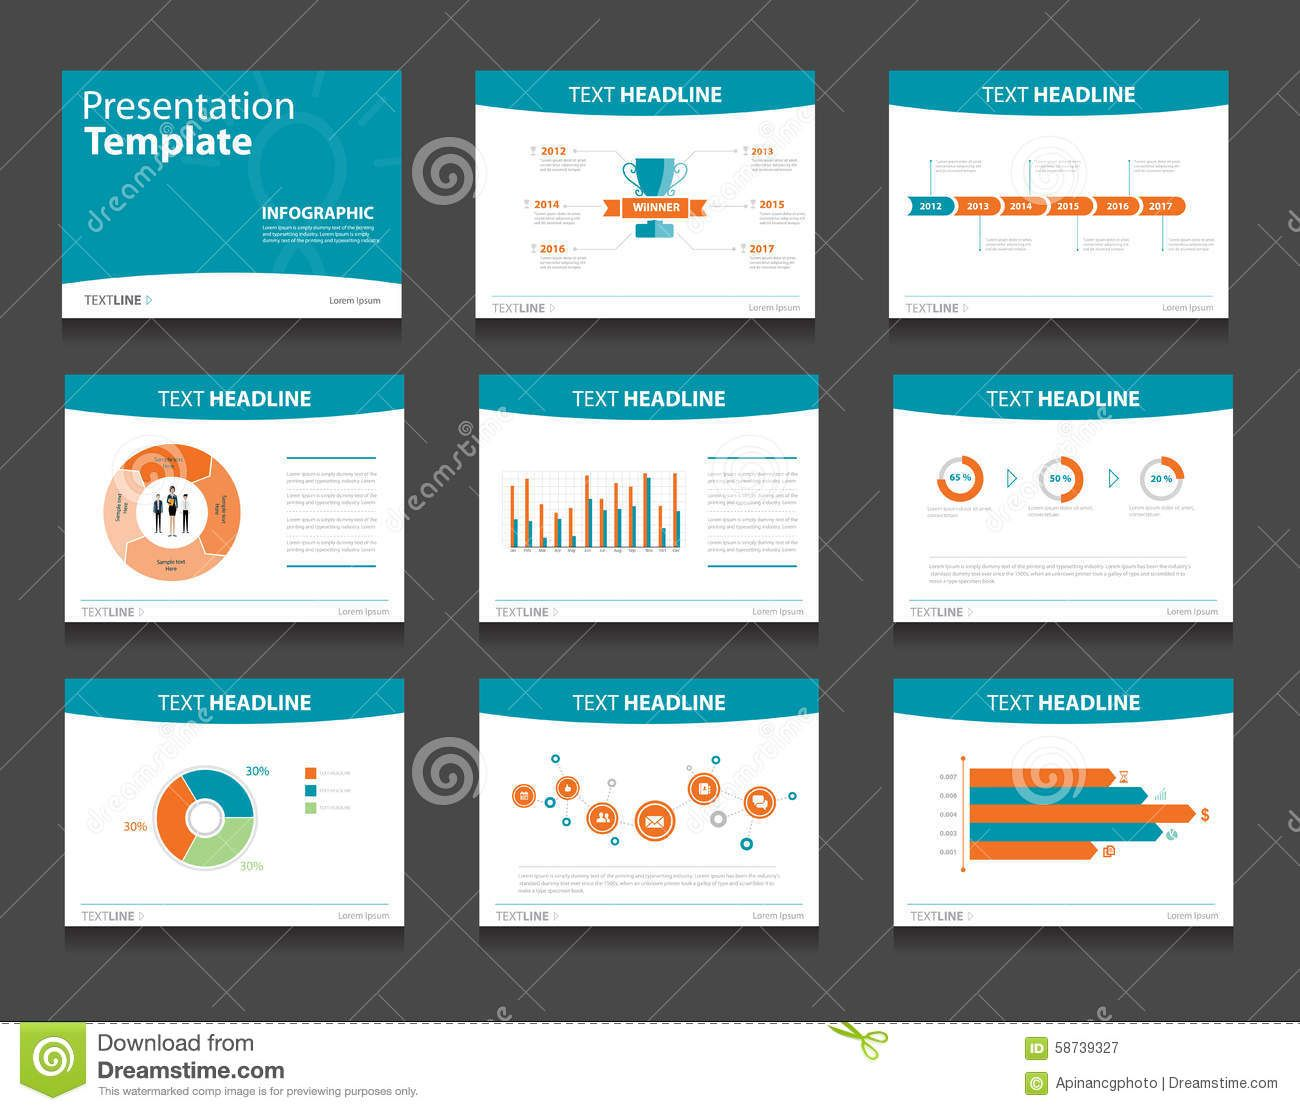 Powerpoint presentation design templates kubreforic powerpoint presentation design templates wajeb Choice Image